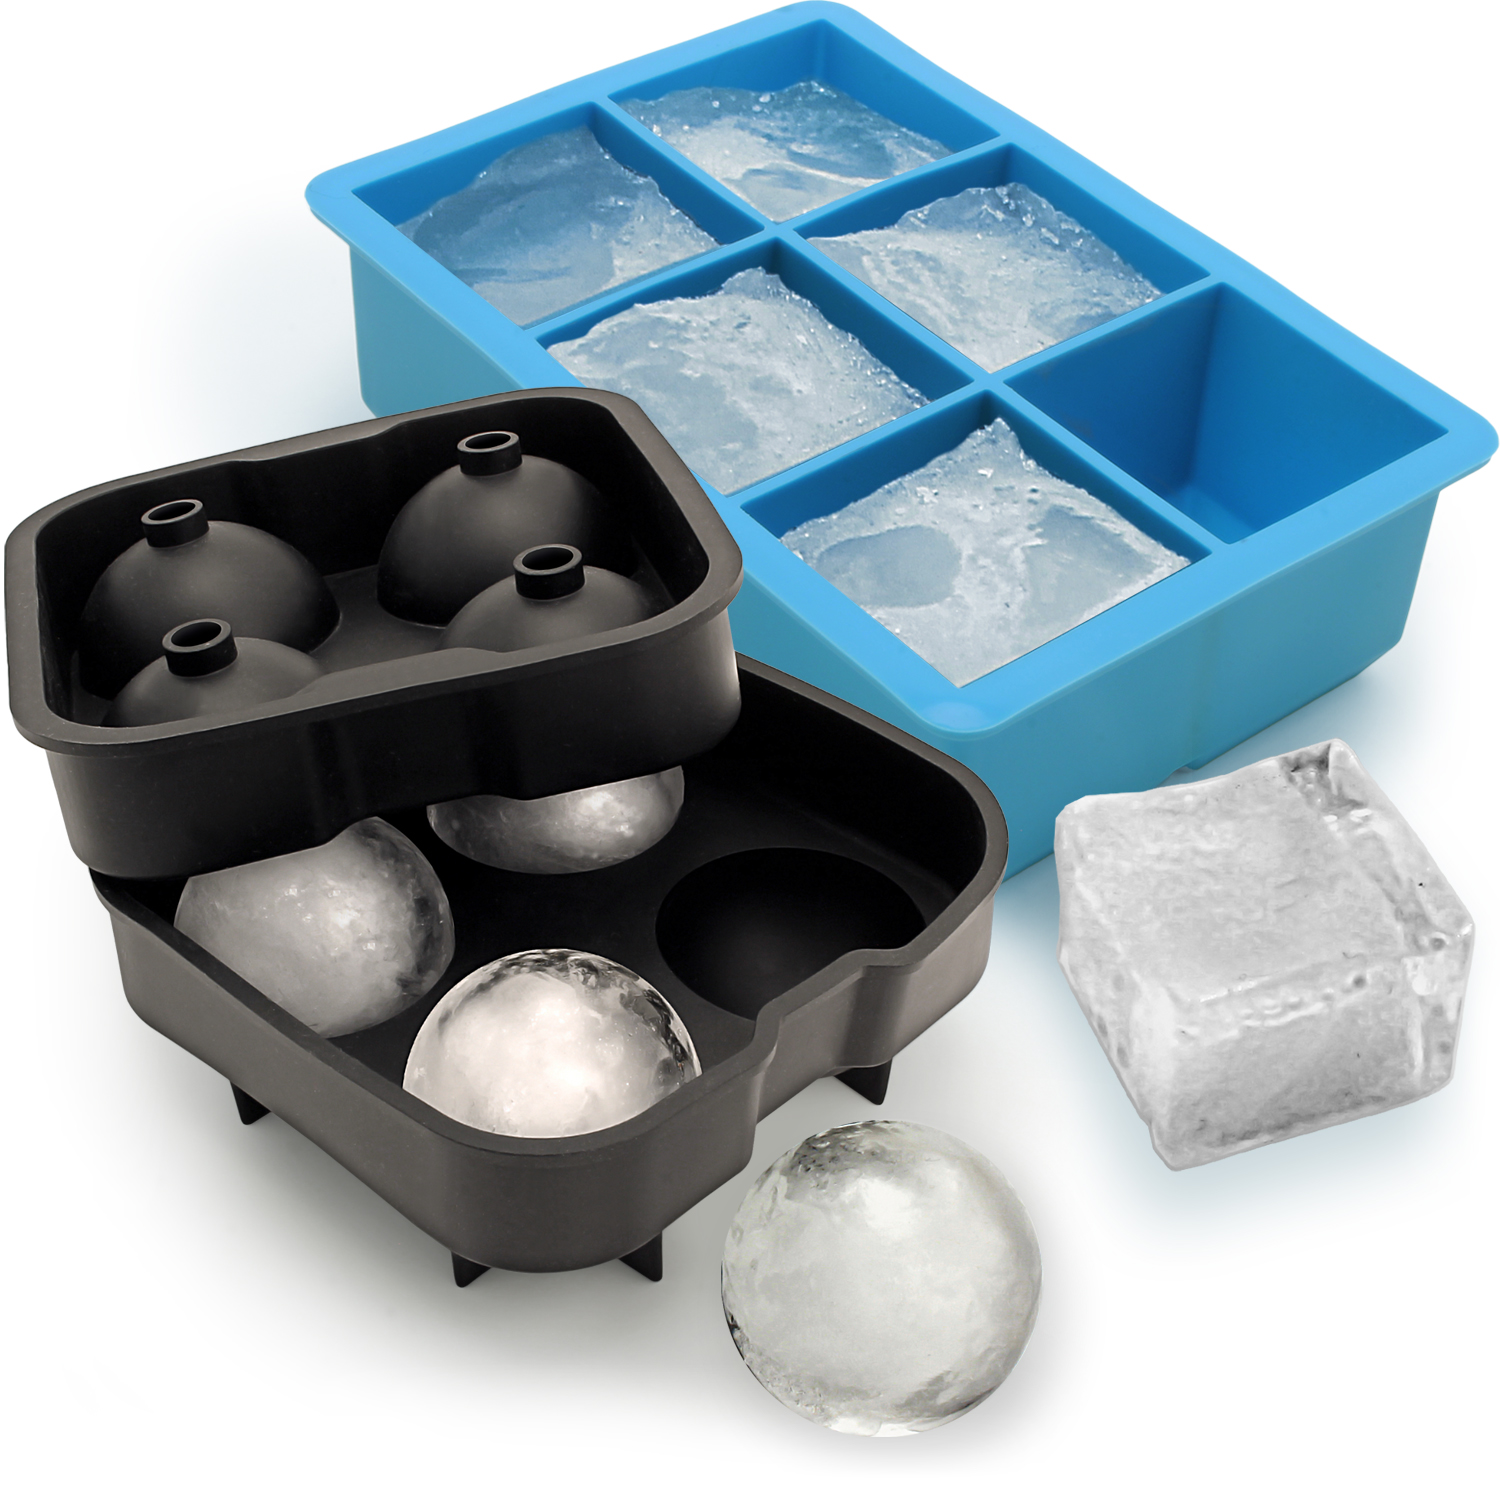 Igadgitz Home Silicone Ice Cube Tray 6x Extra Large Square Ball Mould 4x Sphere